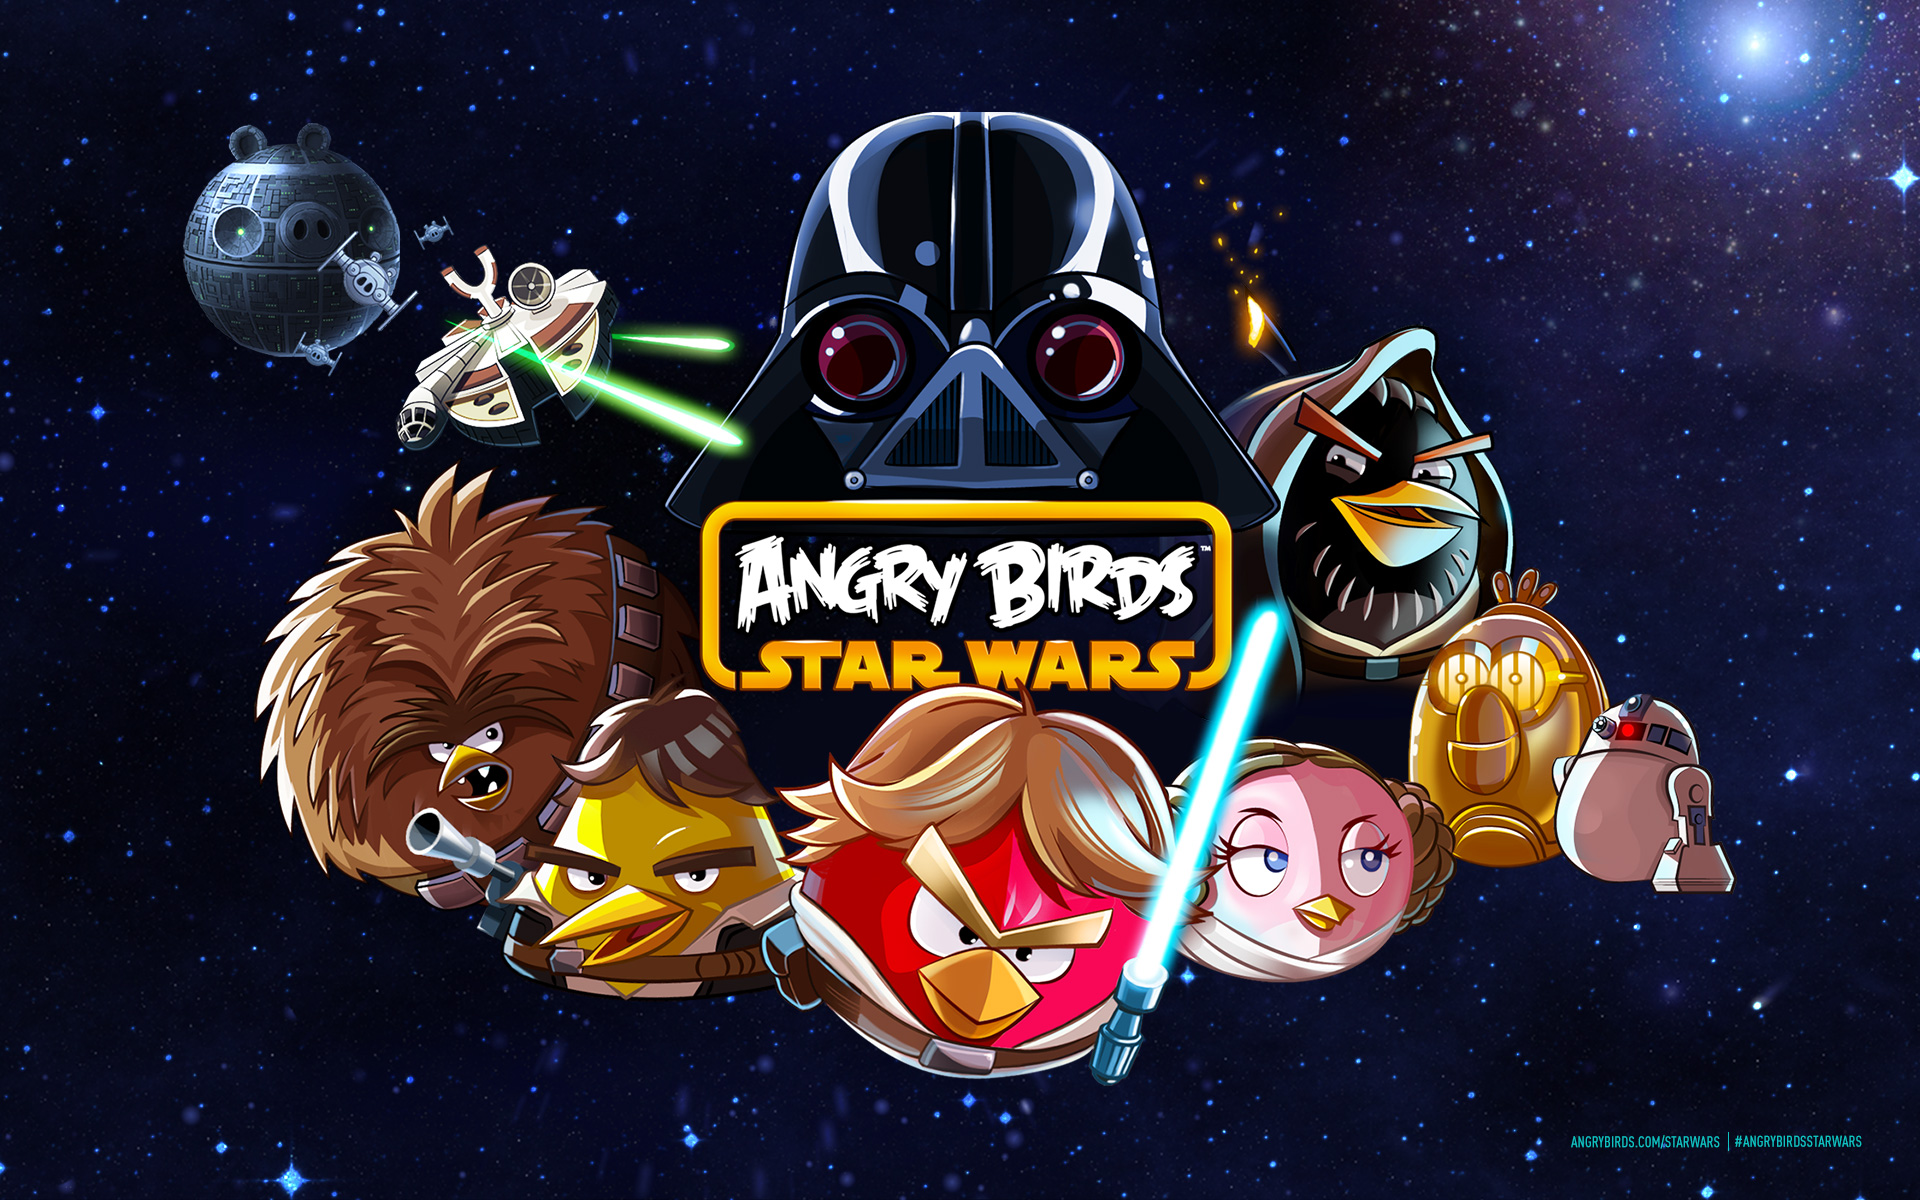 angrybirds_starwars